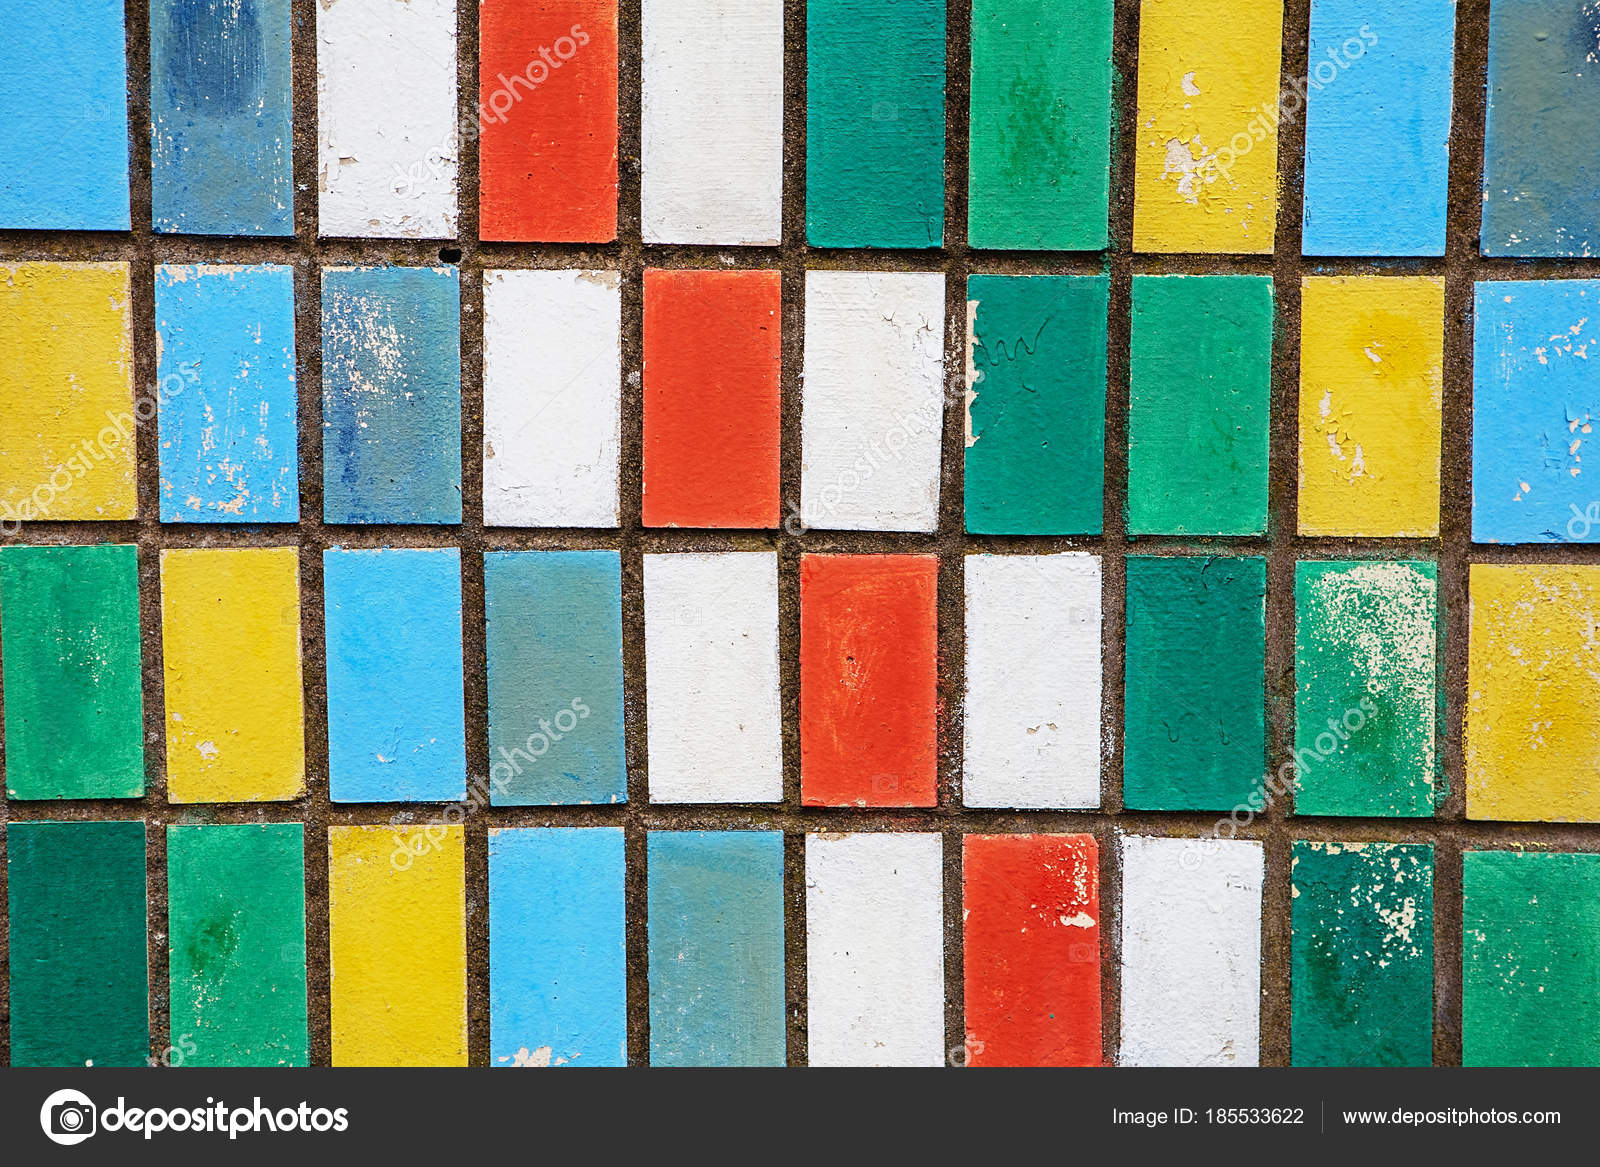 texture of old wall tiles with peeling bright paint. colorful ol ...